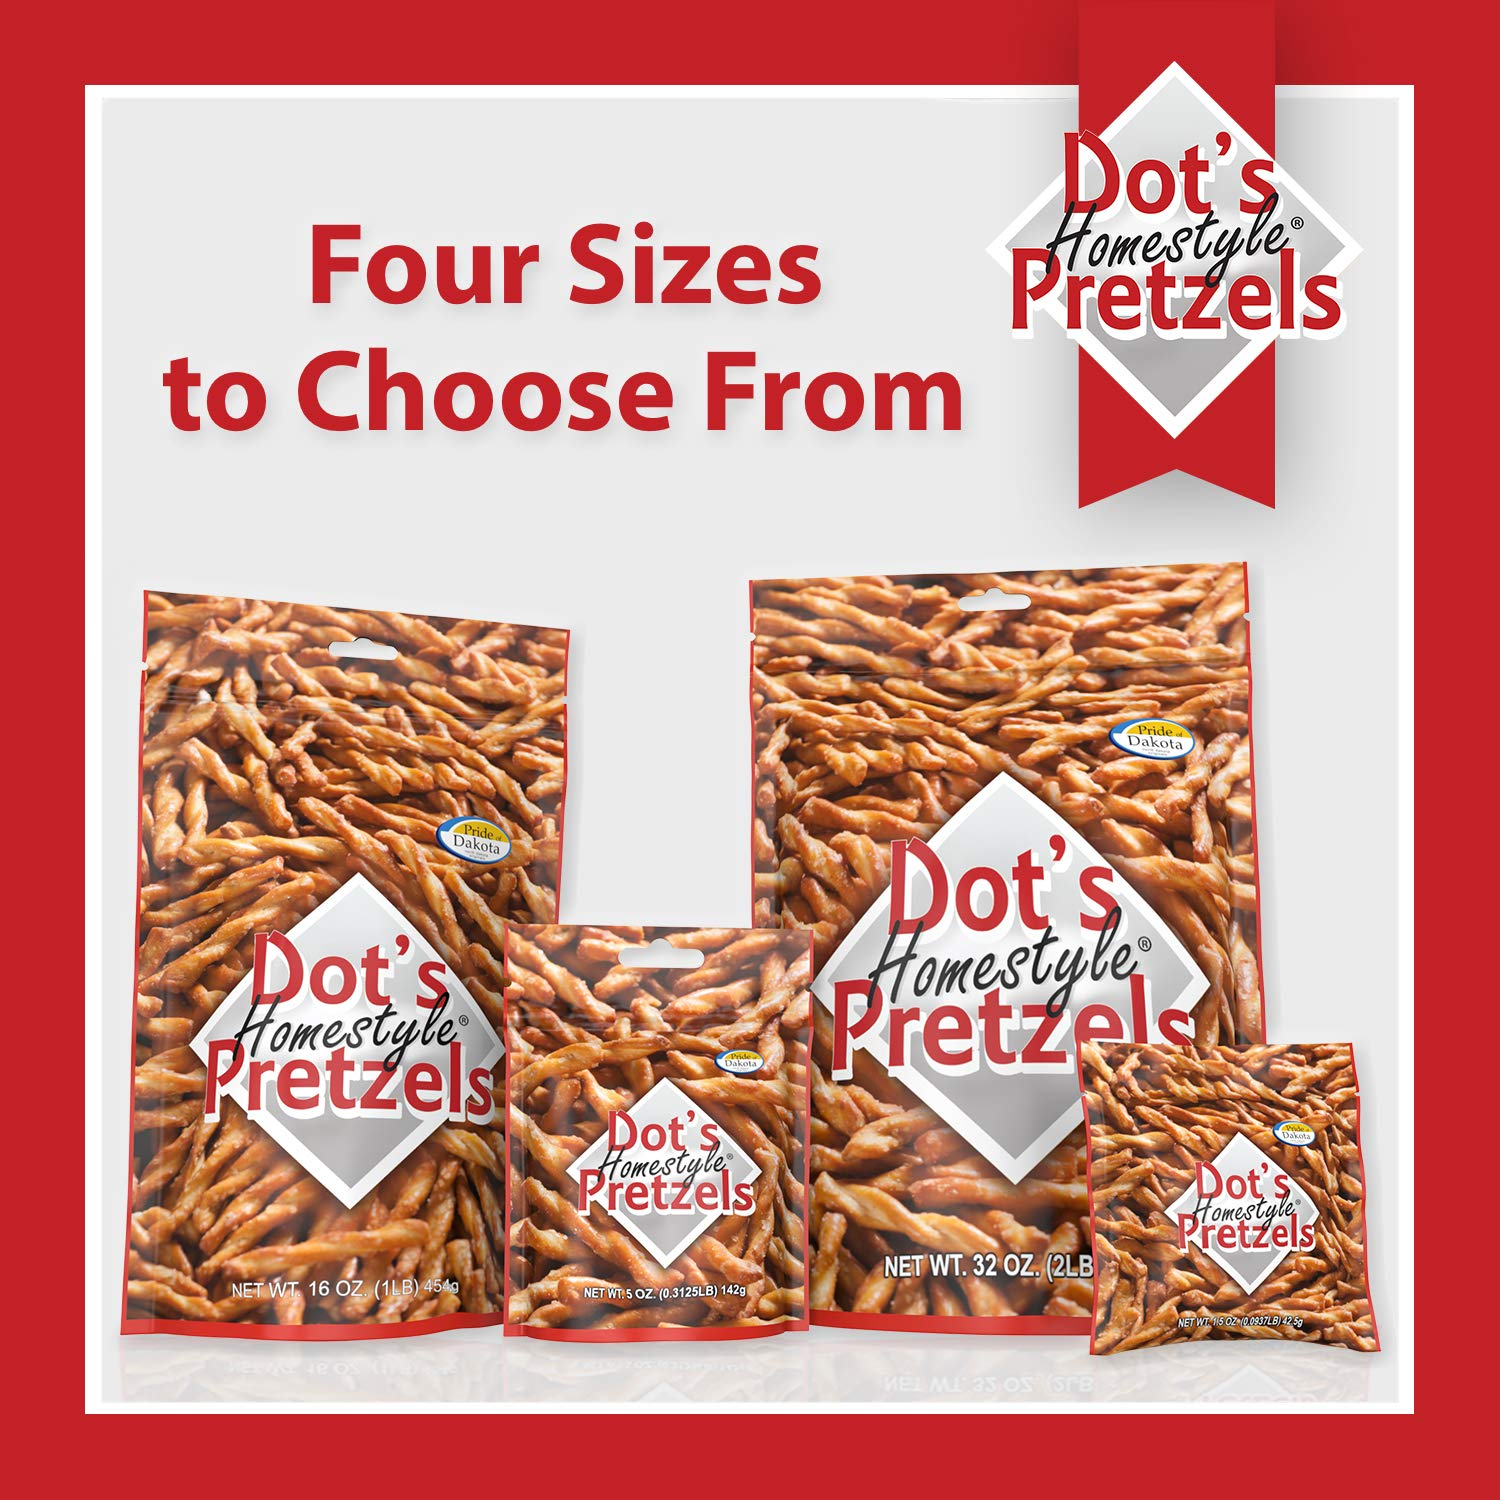 Dot's Homestyle Pretzels 5 oz. Bags (5 Pack) Snack Sized Seasoned Pretzel Snack Sticks by Dot's Homestyle Pretzels (Image #2)